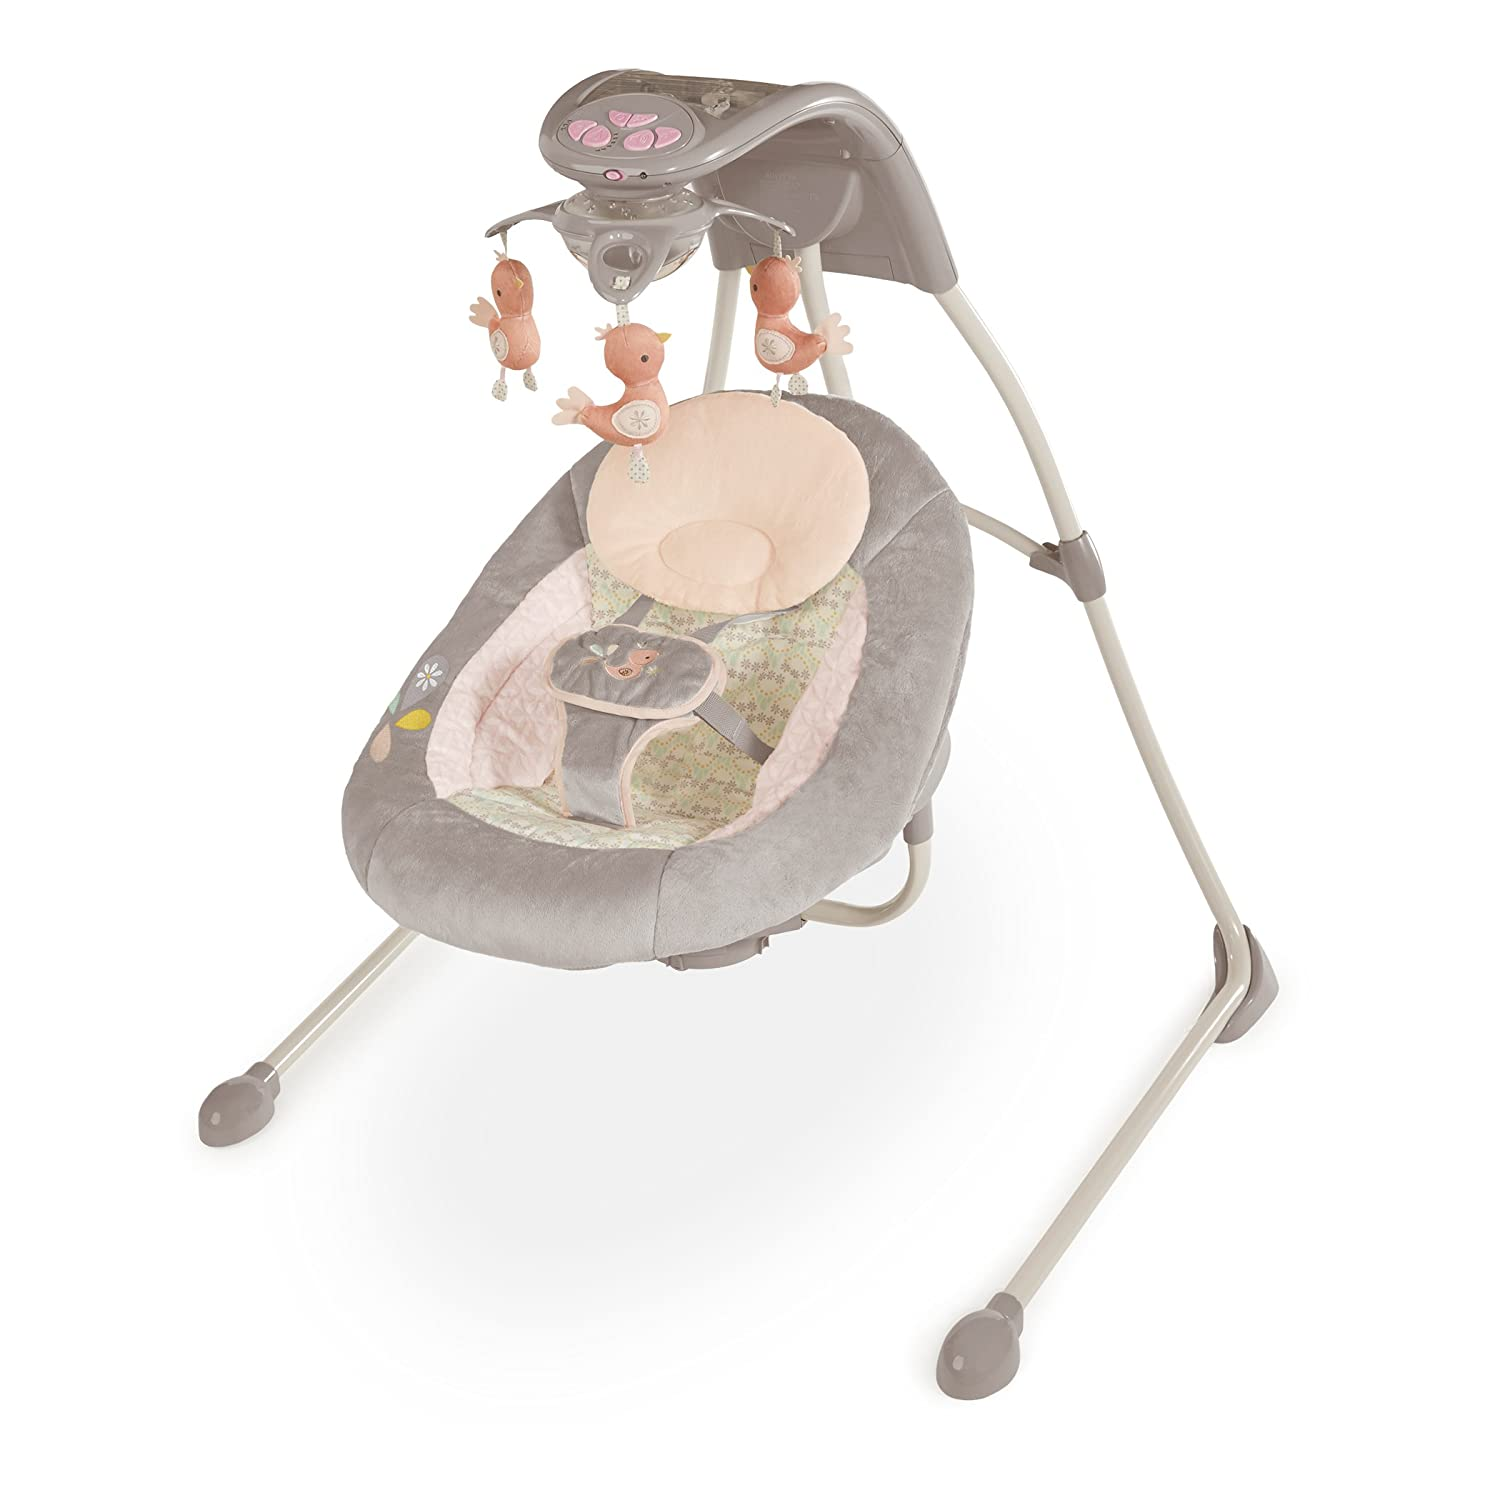 92752951e Amazon.com : Ingenuity Inlighten Cradling Swing : Baby